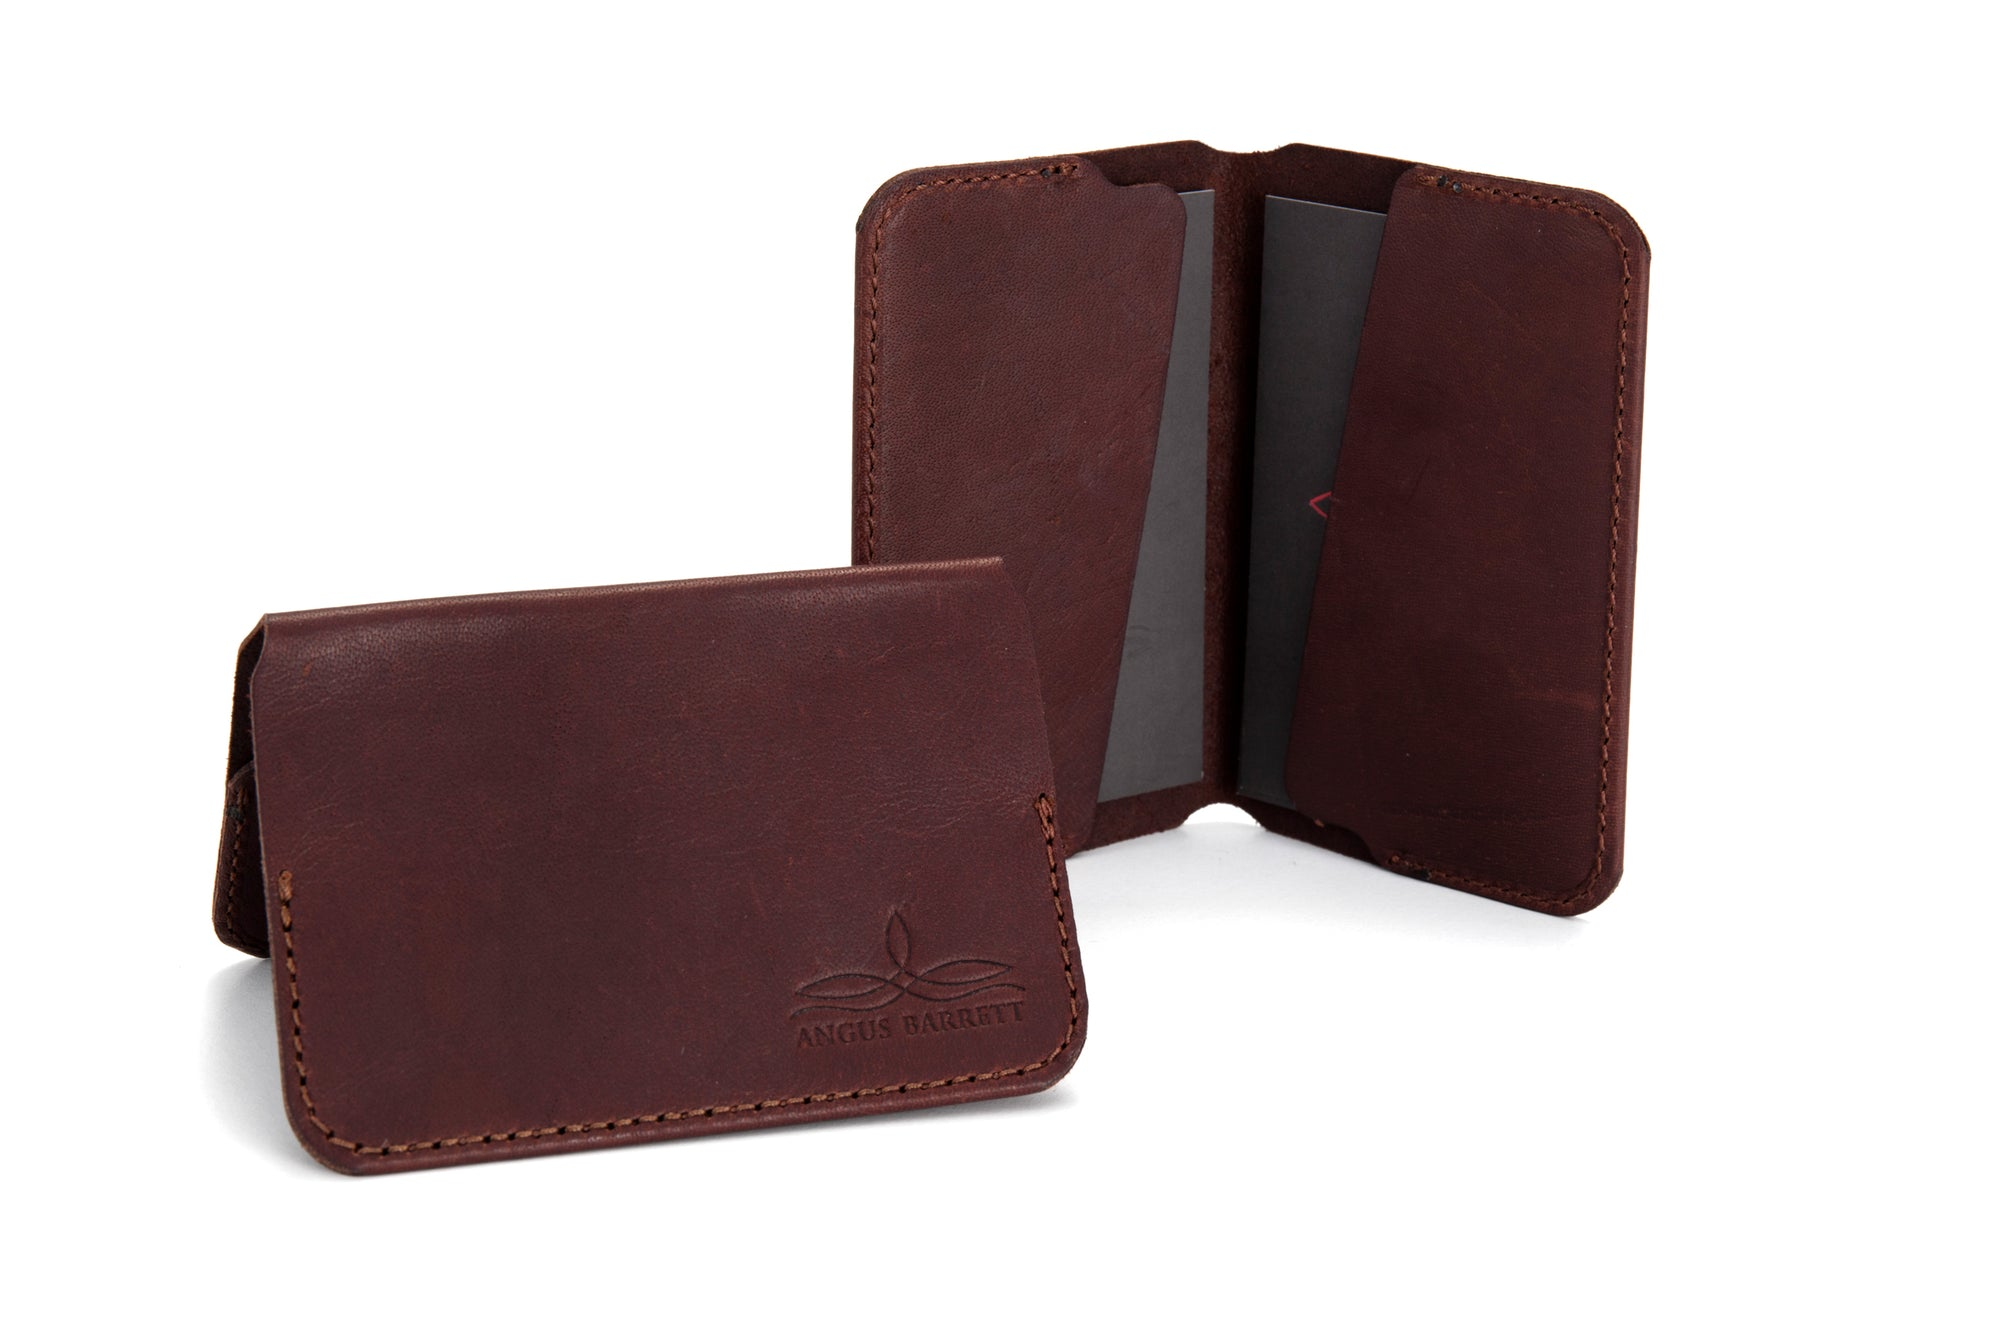 Kangaroo leather card holders